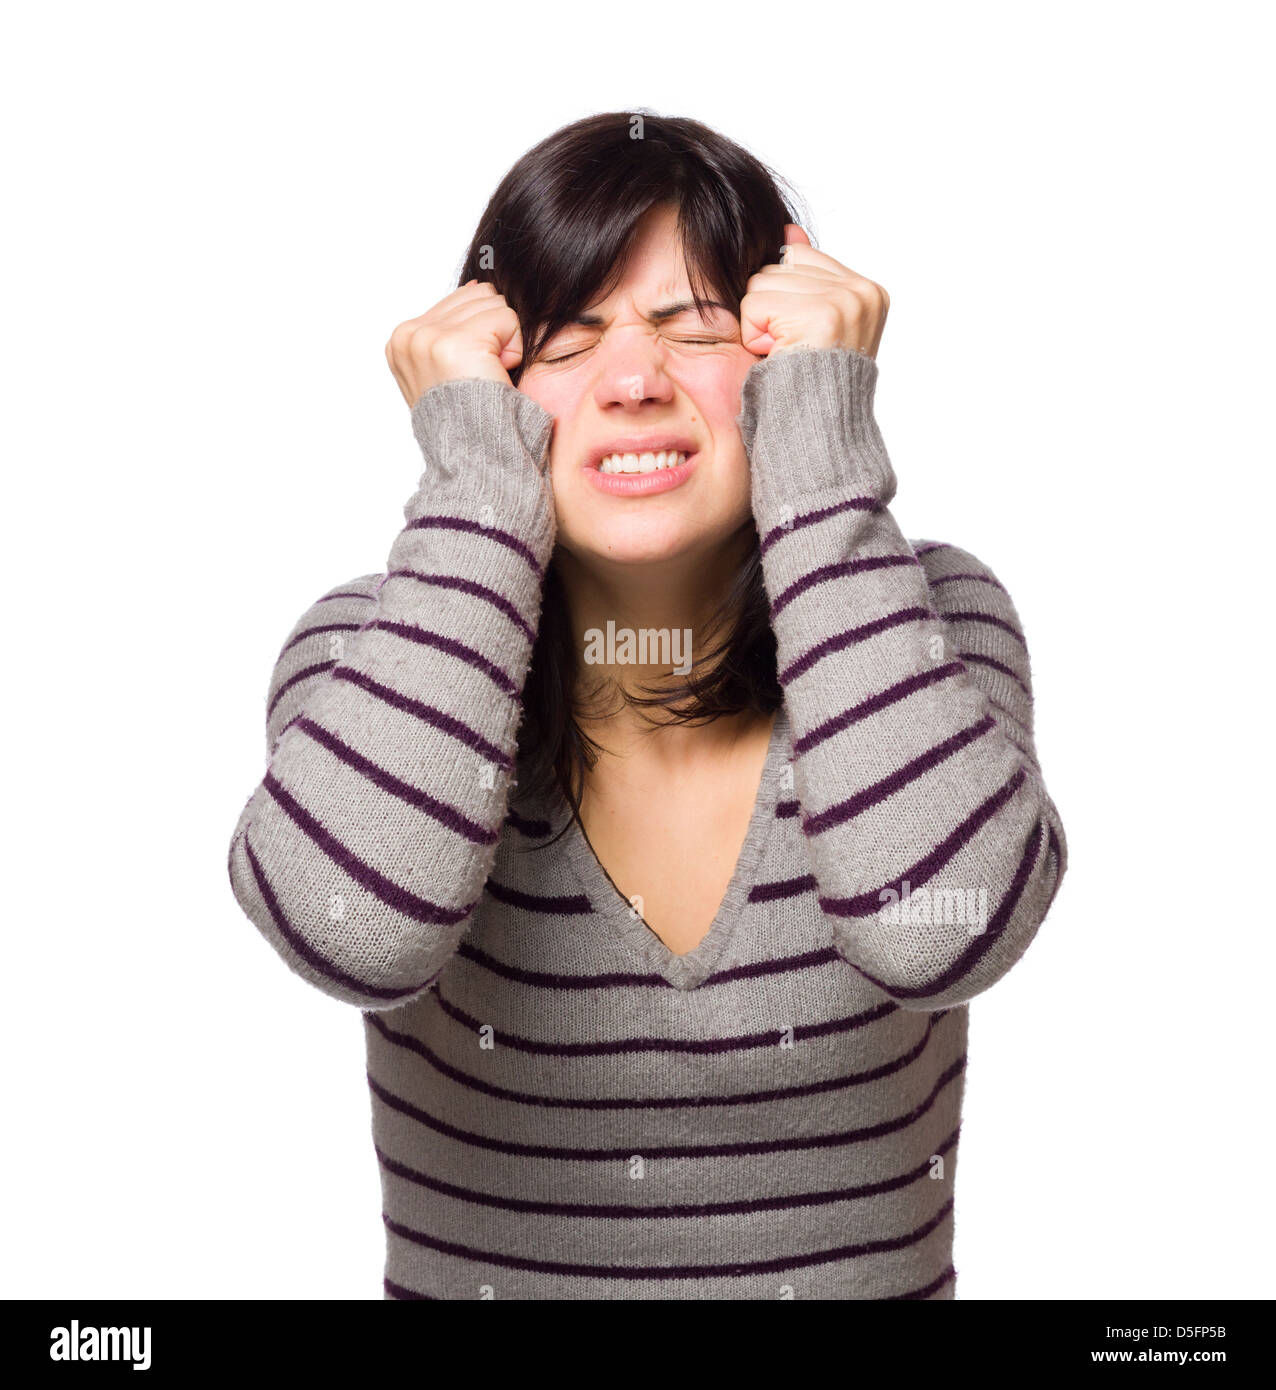 Frustrated young woman grimacing isolated on white background - Stock Image